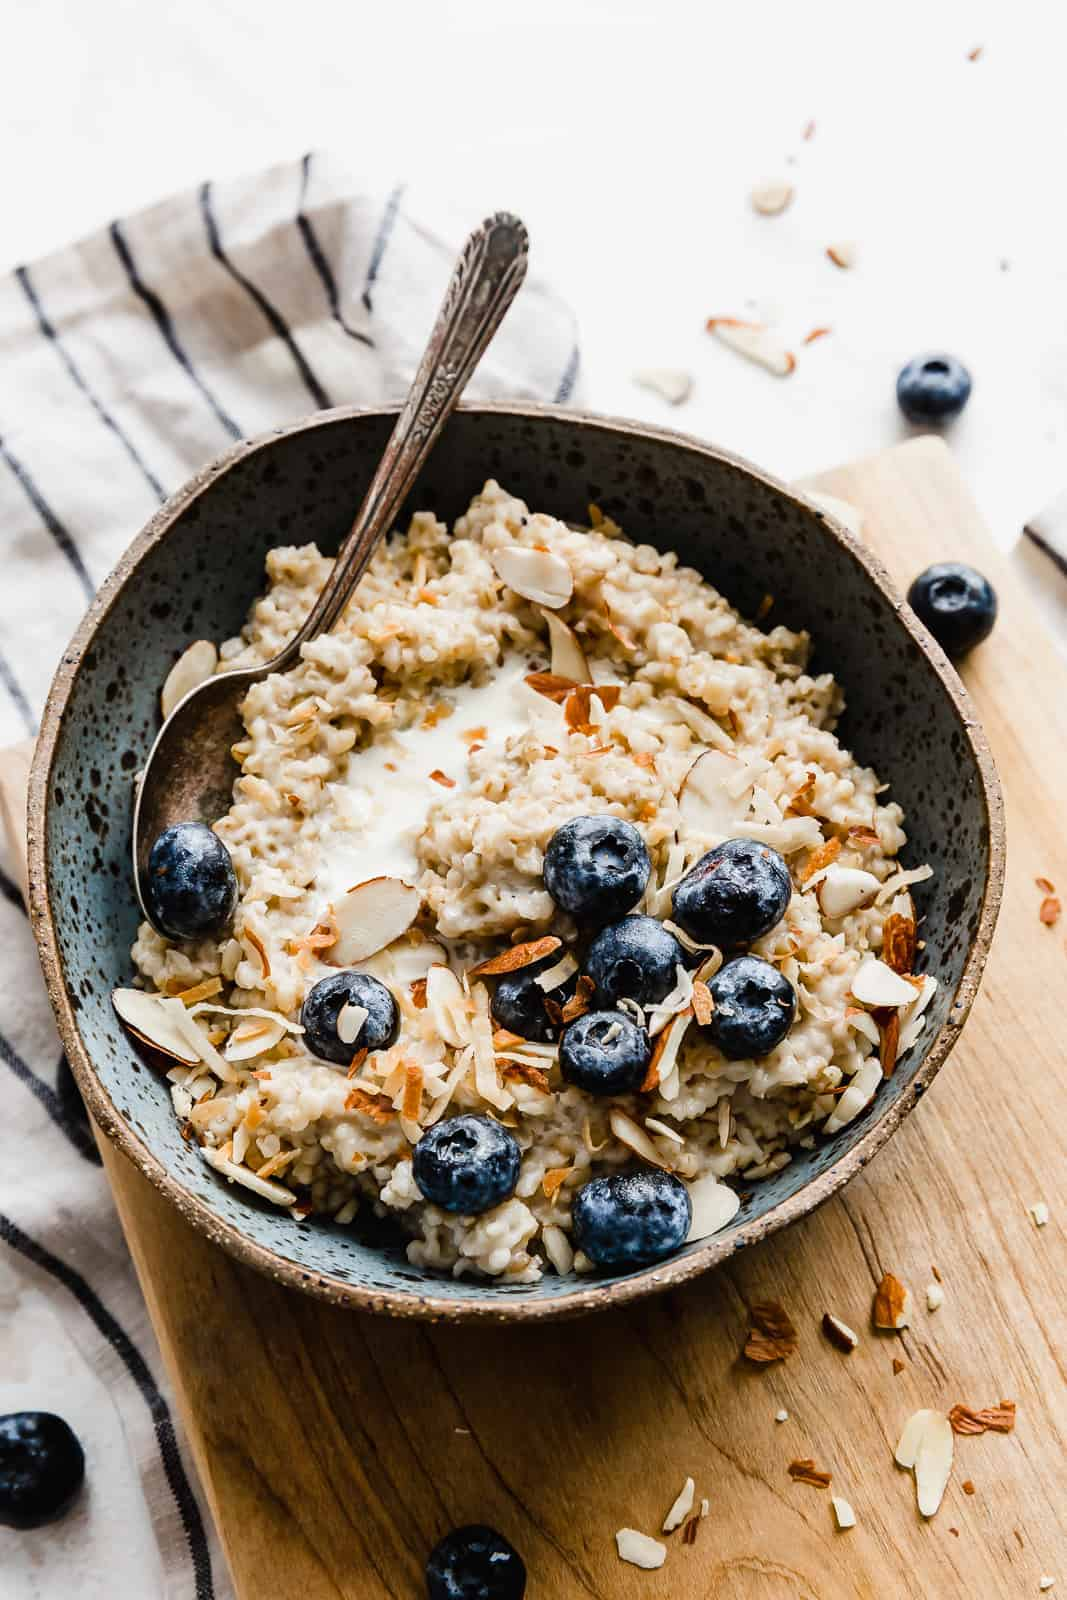 A bowl of steel cut oats topped with blueberries, almonds, and milk.